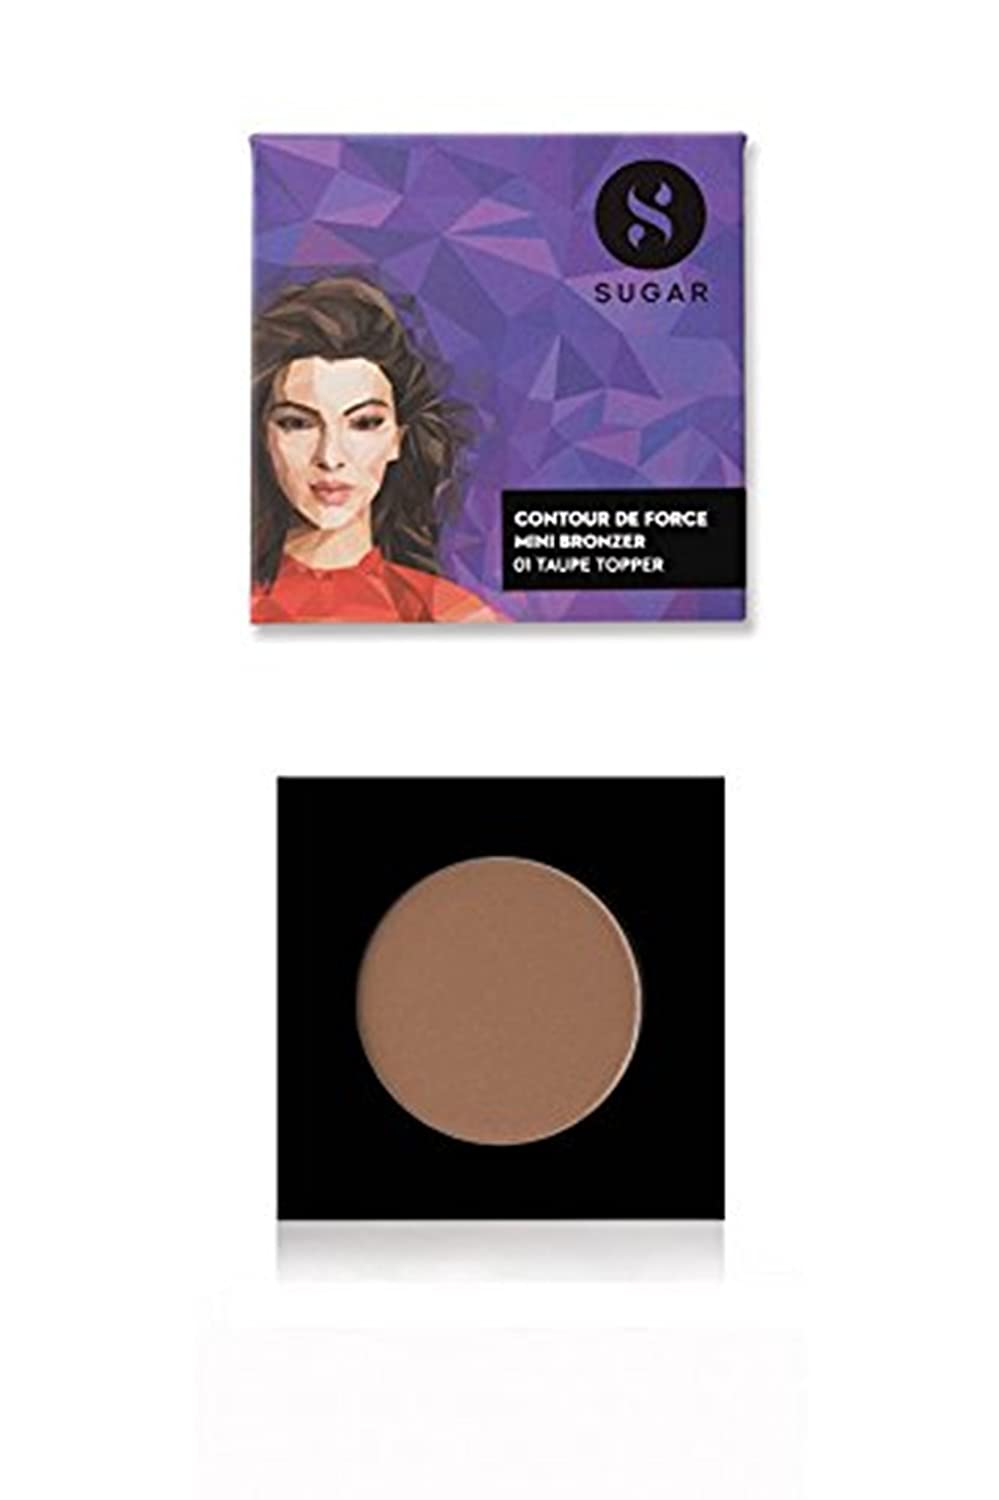 SUGAR Cosmetics Contour De Force Mini Bronzer 01 Taupe Topper Brown Gray , 4 g